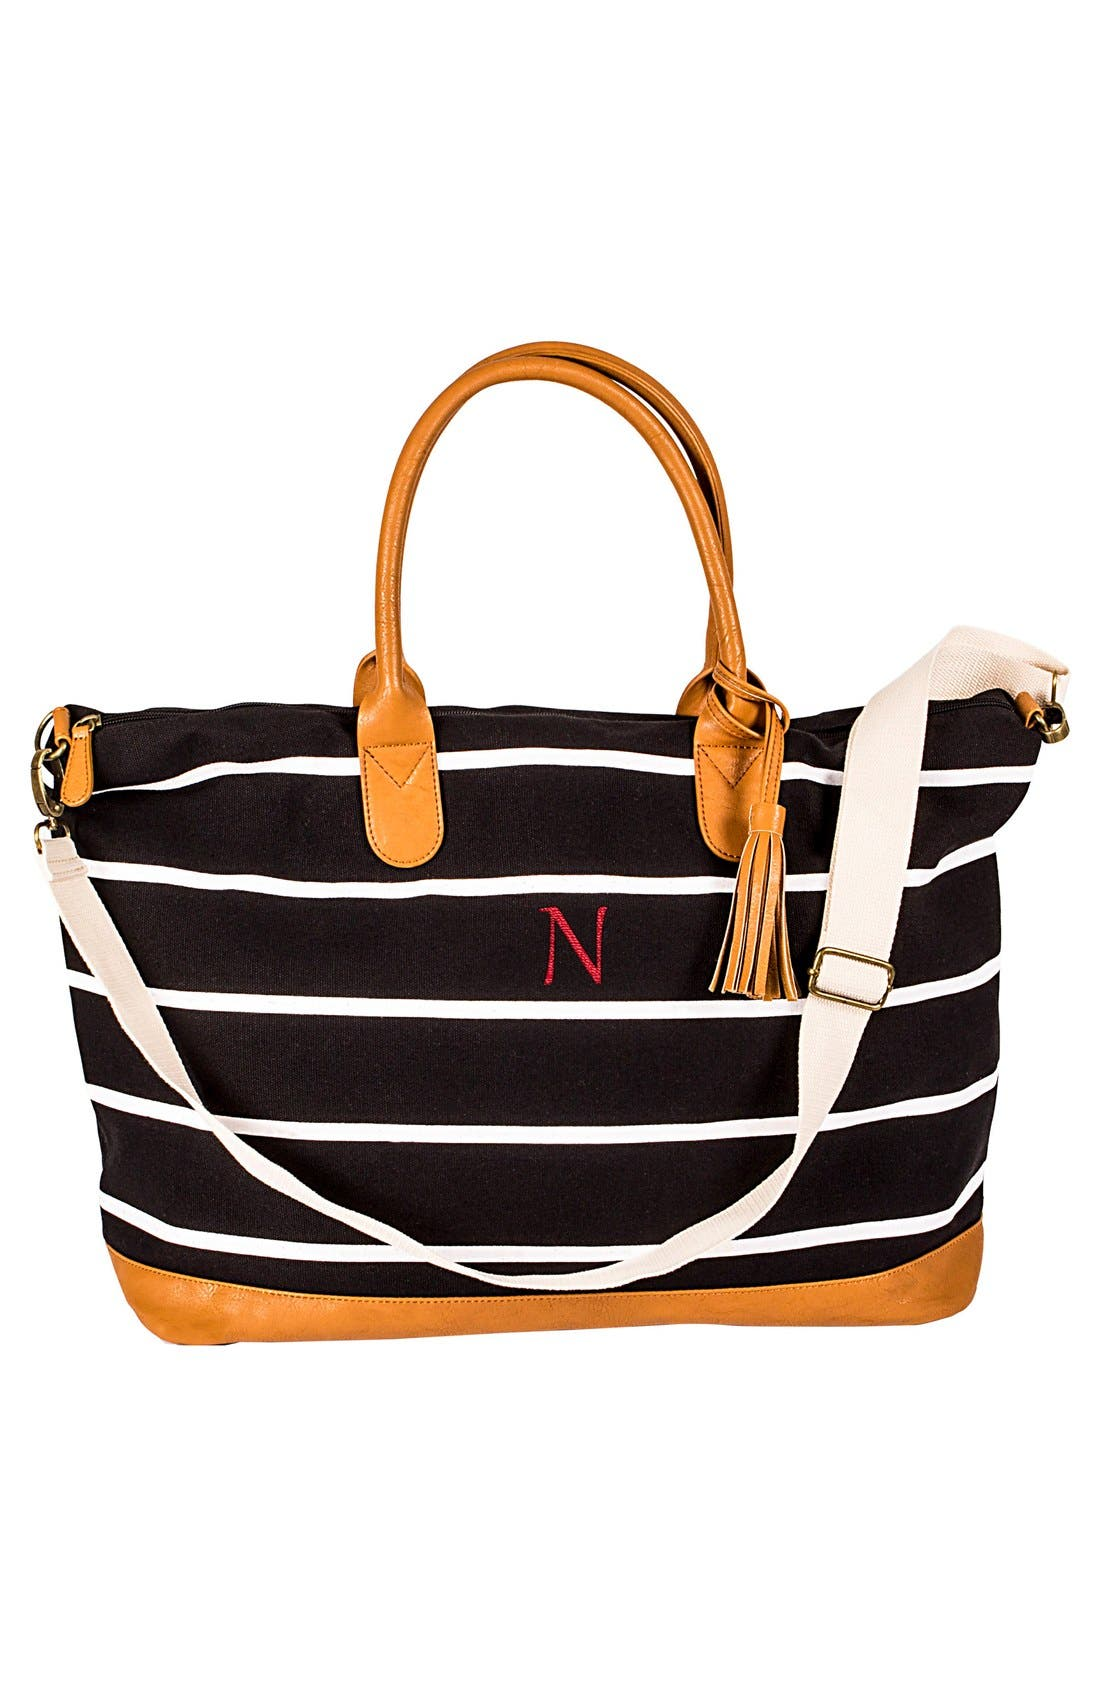 Main Image - Cathy's Concepts Monogram Oversized Tote